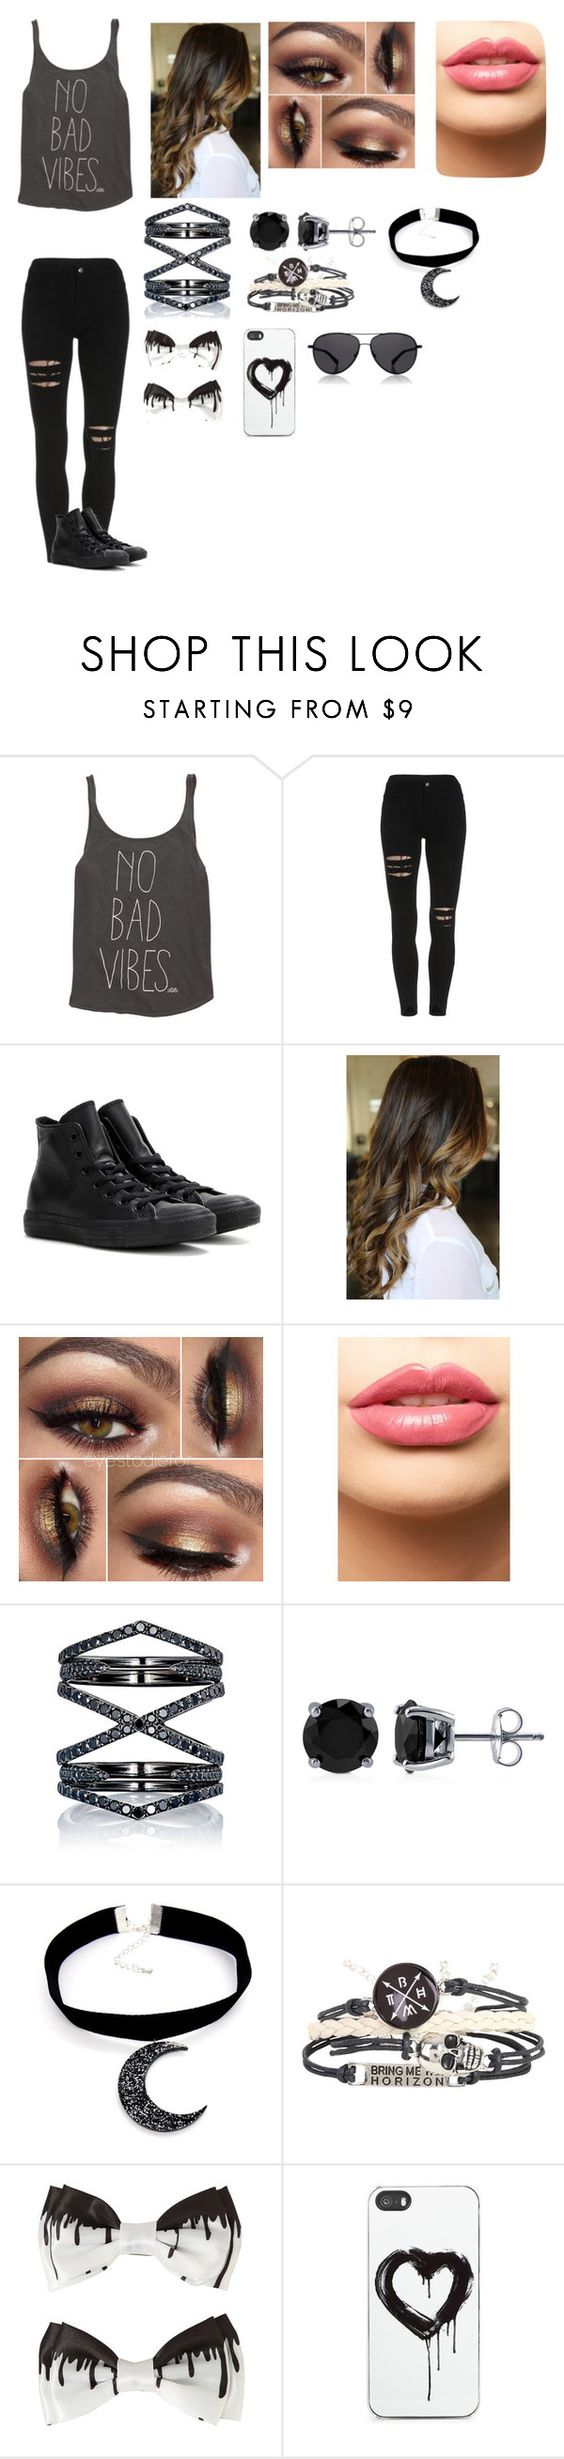 """No Bad Vibes"" by destineer5 ❤ liked on Polyvore featuring Billabong, Converse, LASplash, Eva Fehren, BERRICLE, Zero Gravity, The Row, women's clothing, women and female"